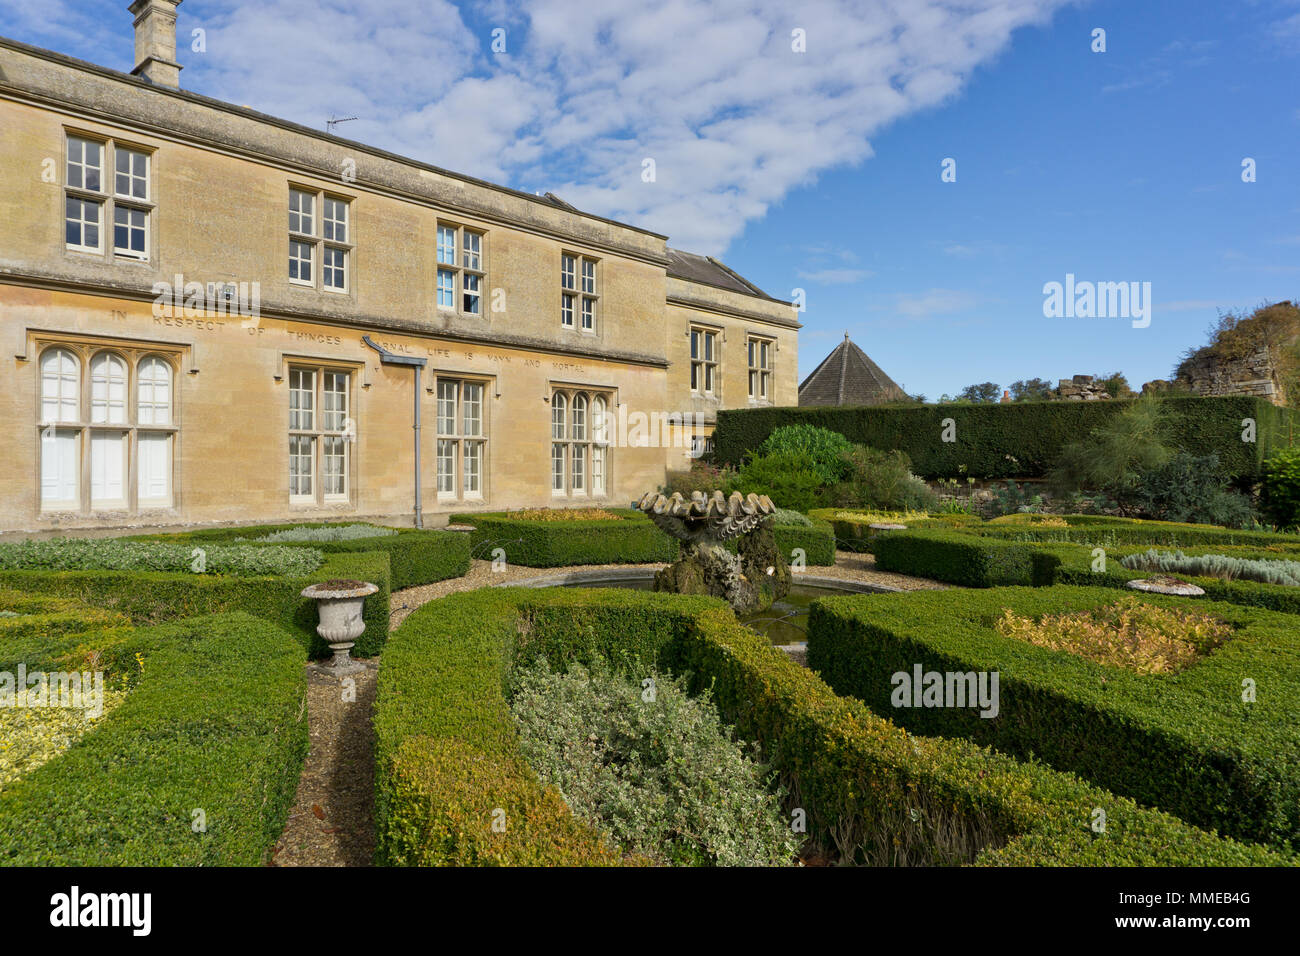 Lamport Hall, a grand 16th century stately home for the Isham family; Lamport, Northamptonshire, UK - Stock Image